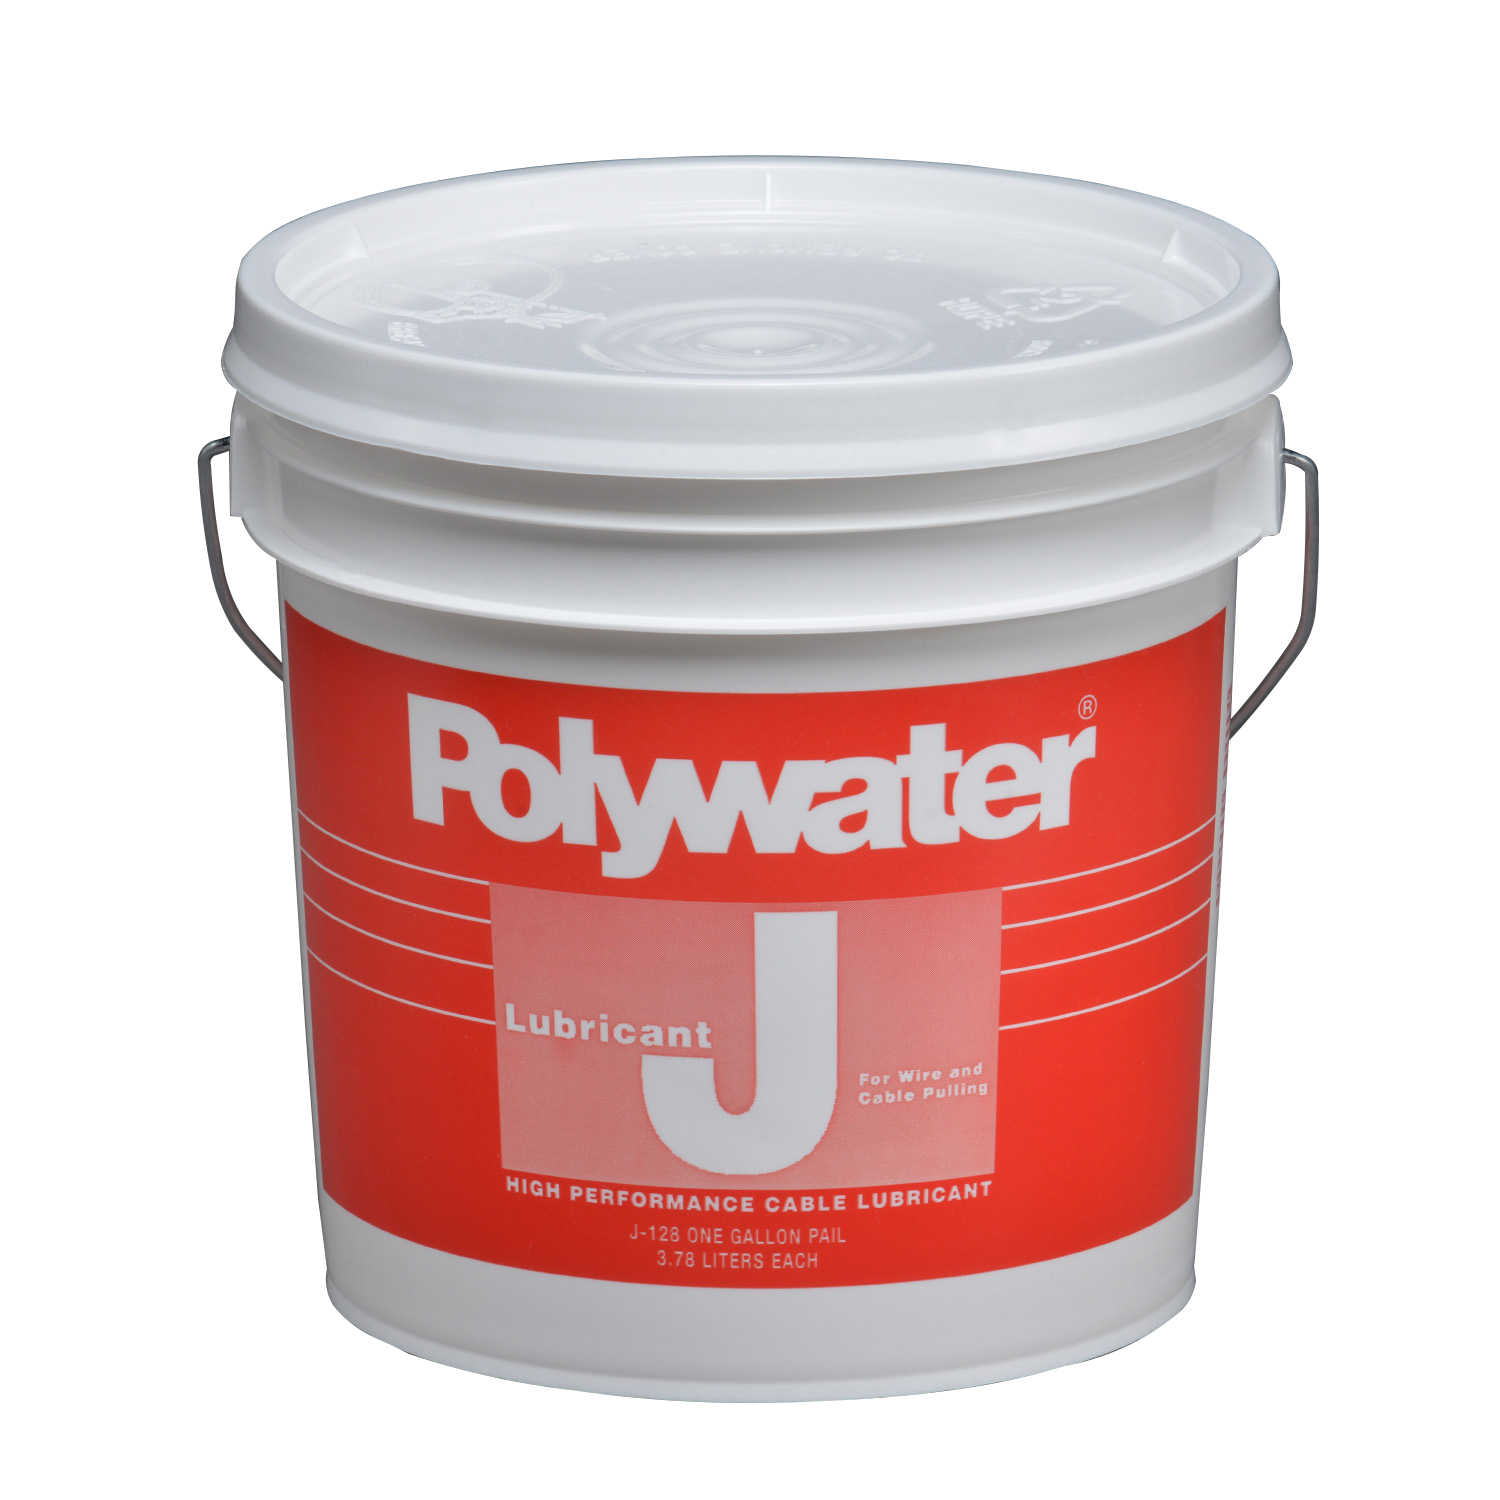 J-128 POLYWATER WIRE LUBE 1-GALLON